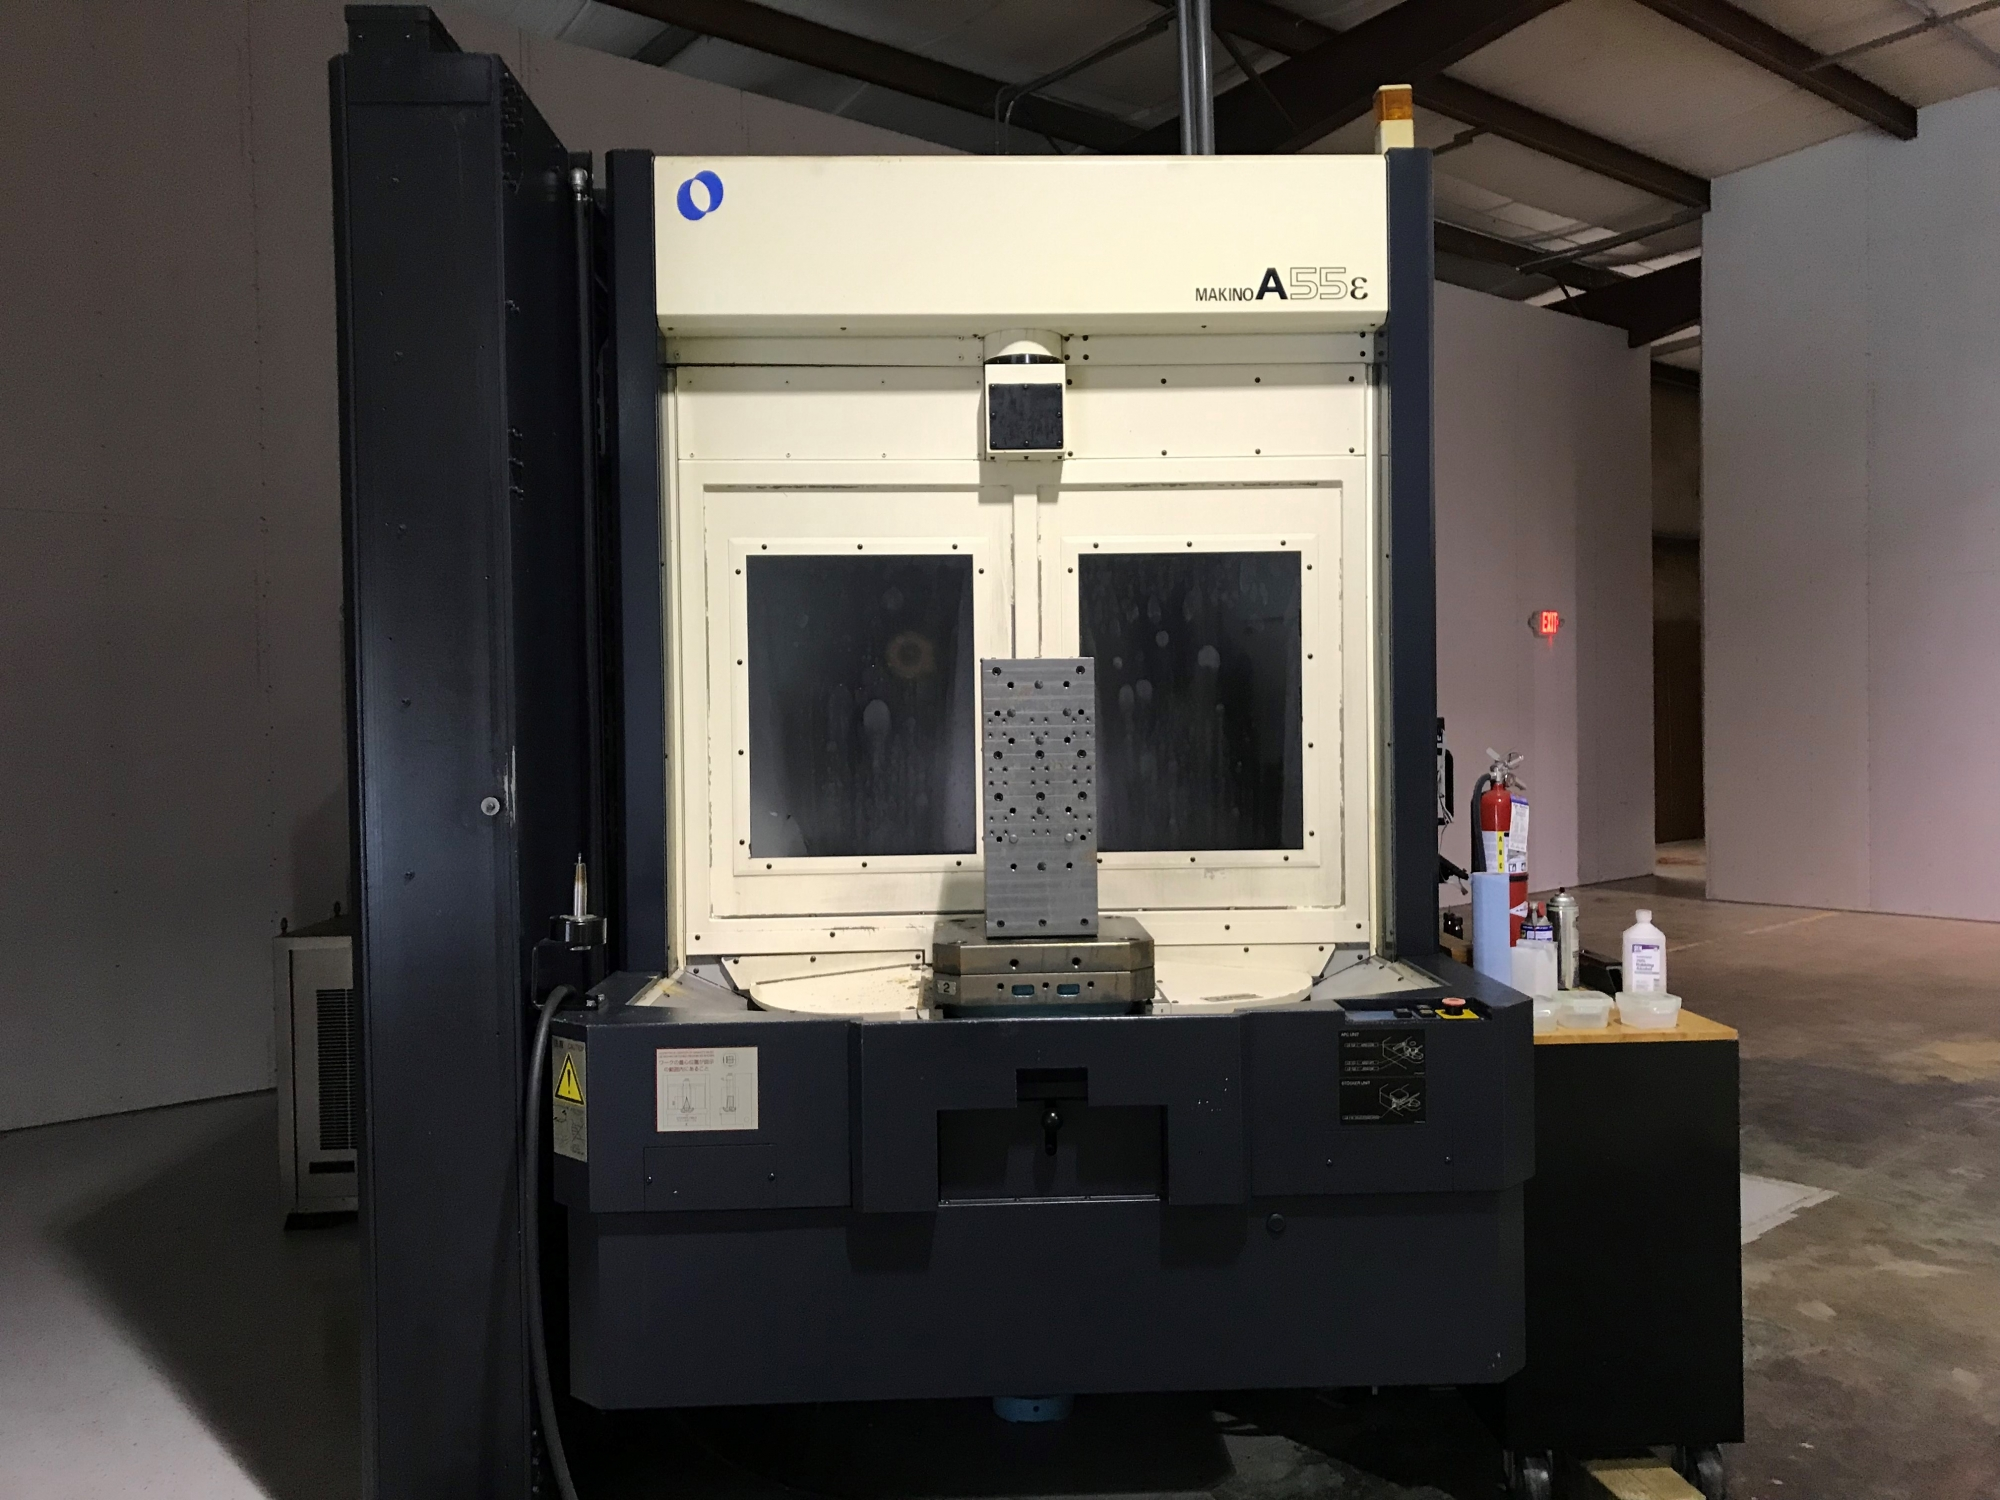 2002 MAKINO A55e - Horizontal Machining Center